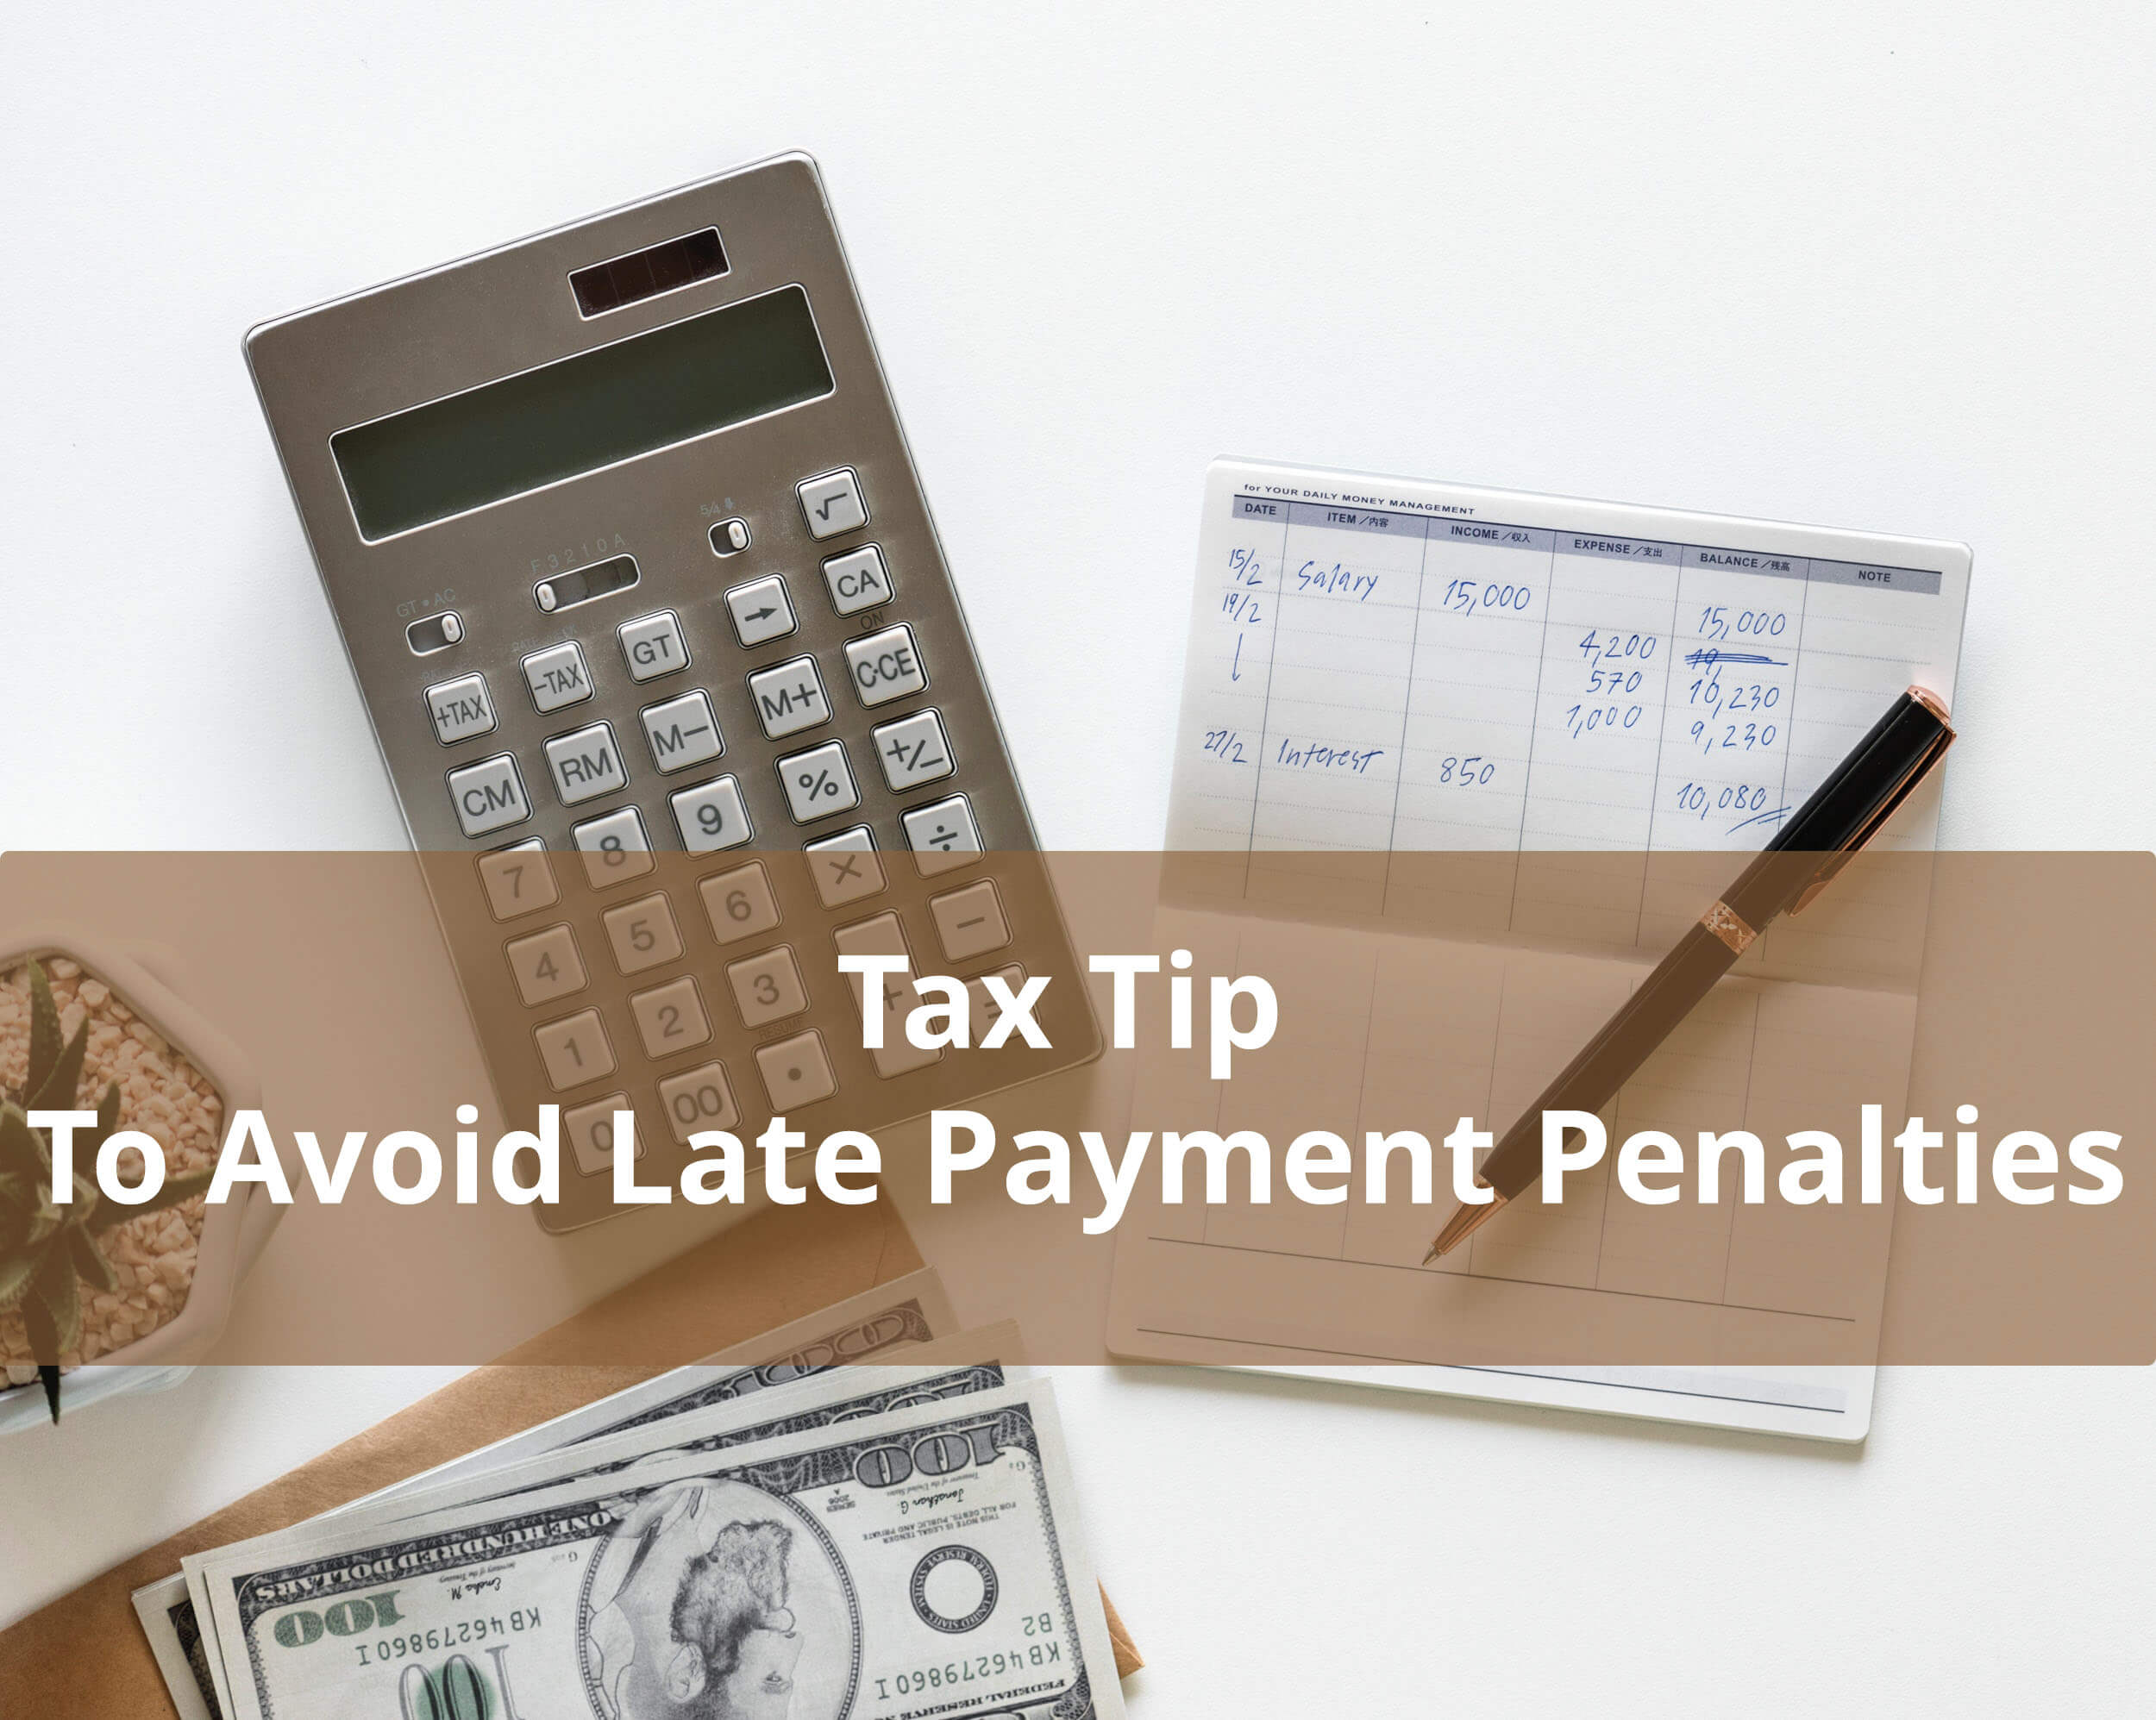 Tax tip to avoid late payment penalties (1)